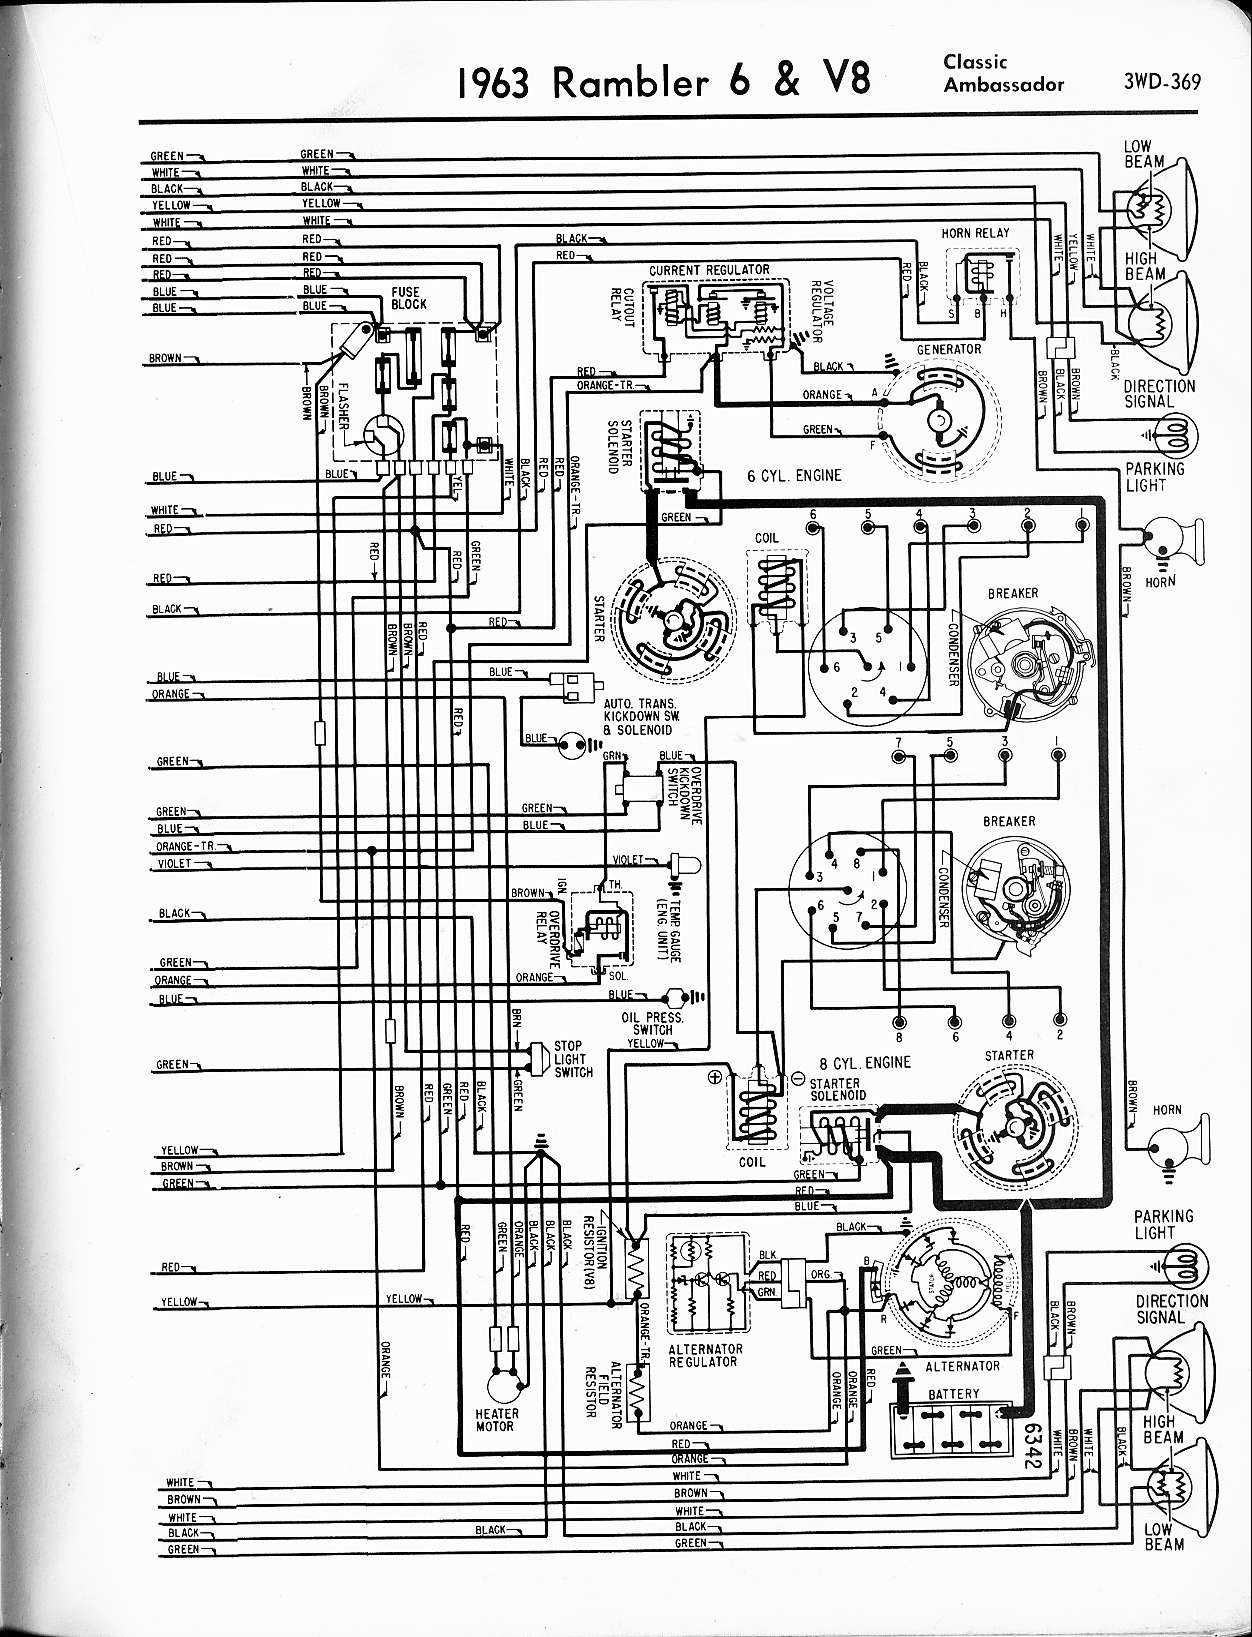 1966 buick wildcat wiring diagram electron dot of nh3 1965 rambler marlin free engine